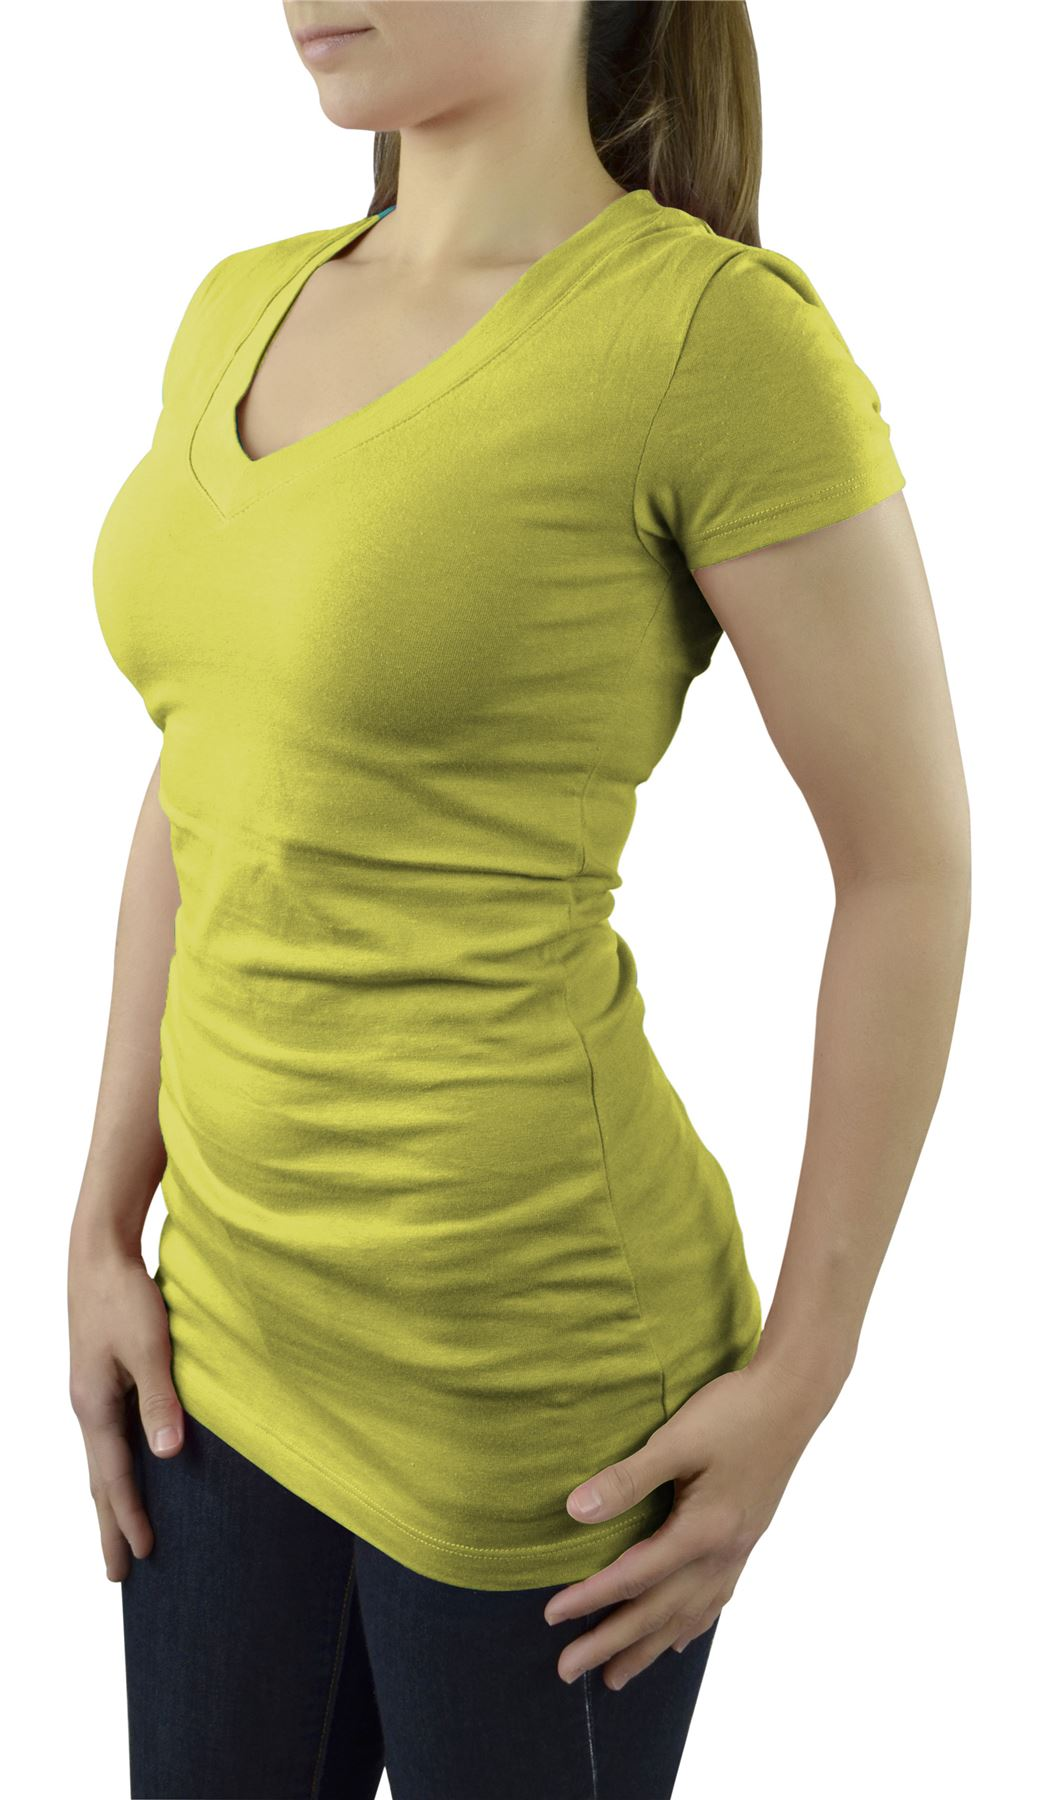 Belle Donne- Women's Short Sleeve V-neck T-shirt Plus Size Various Solid Colors - Mustard/Small